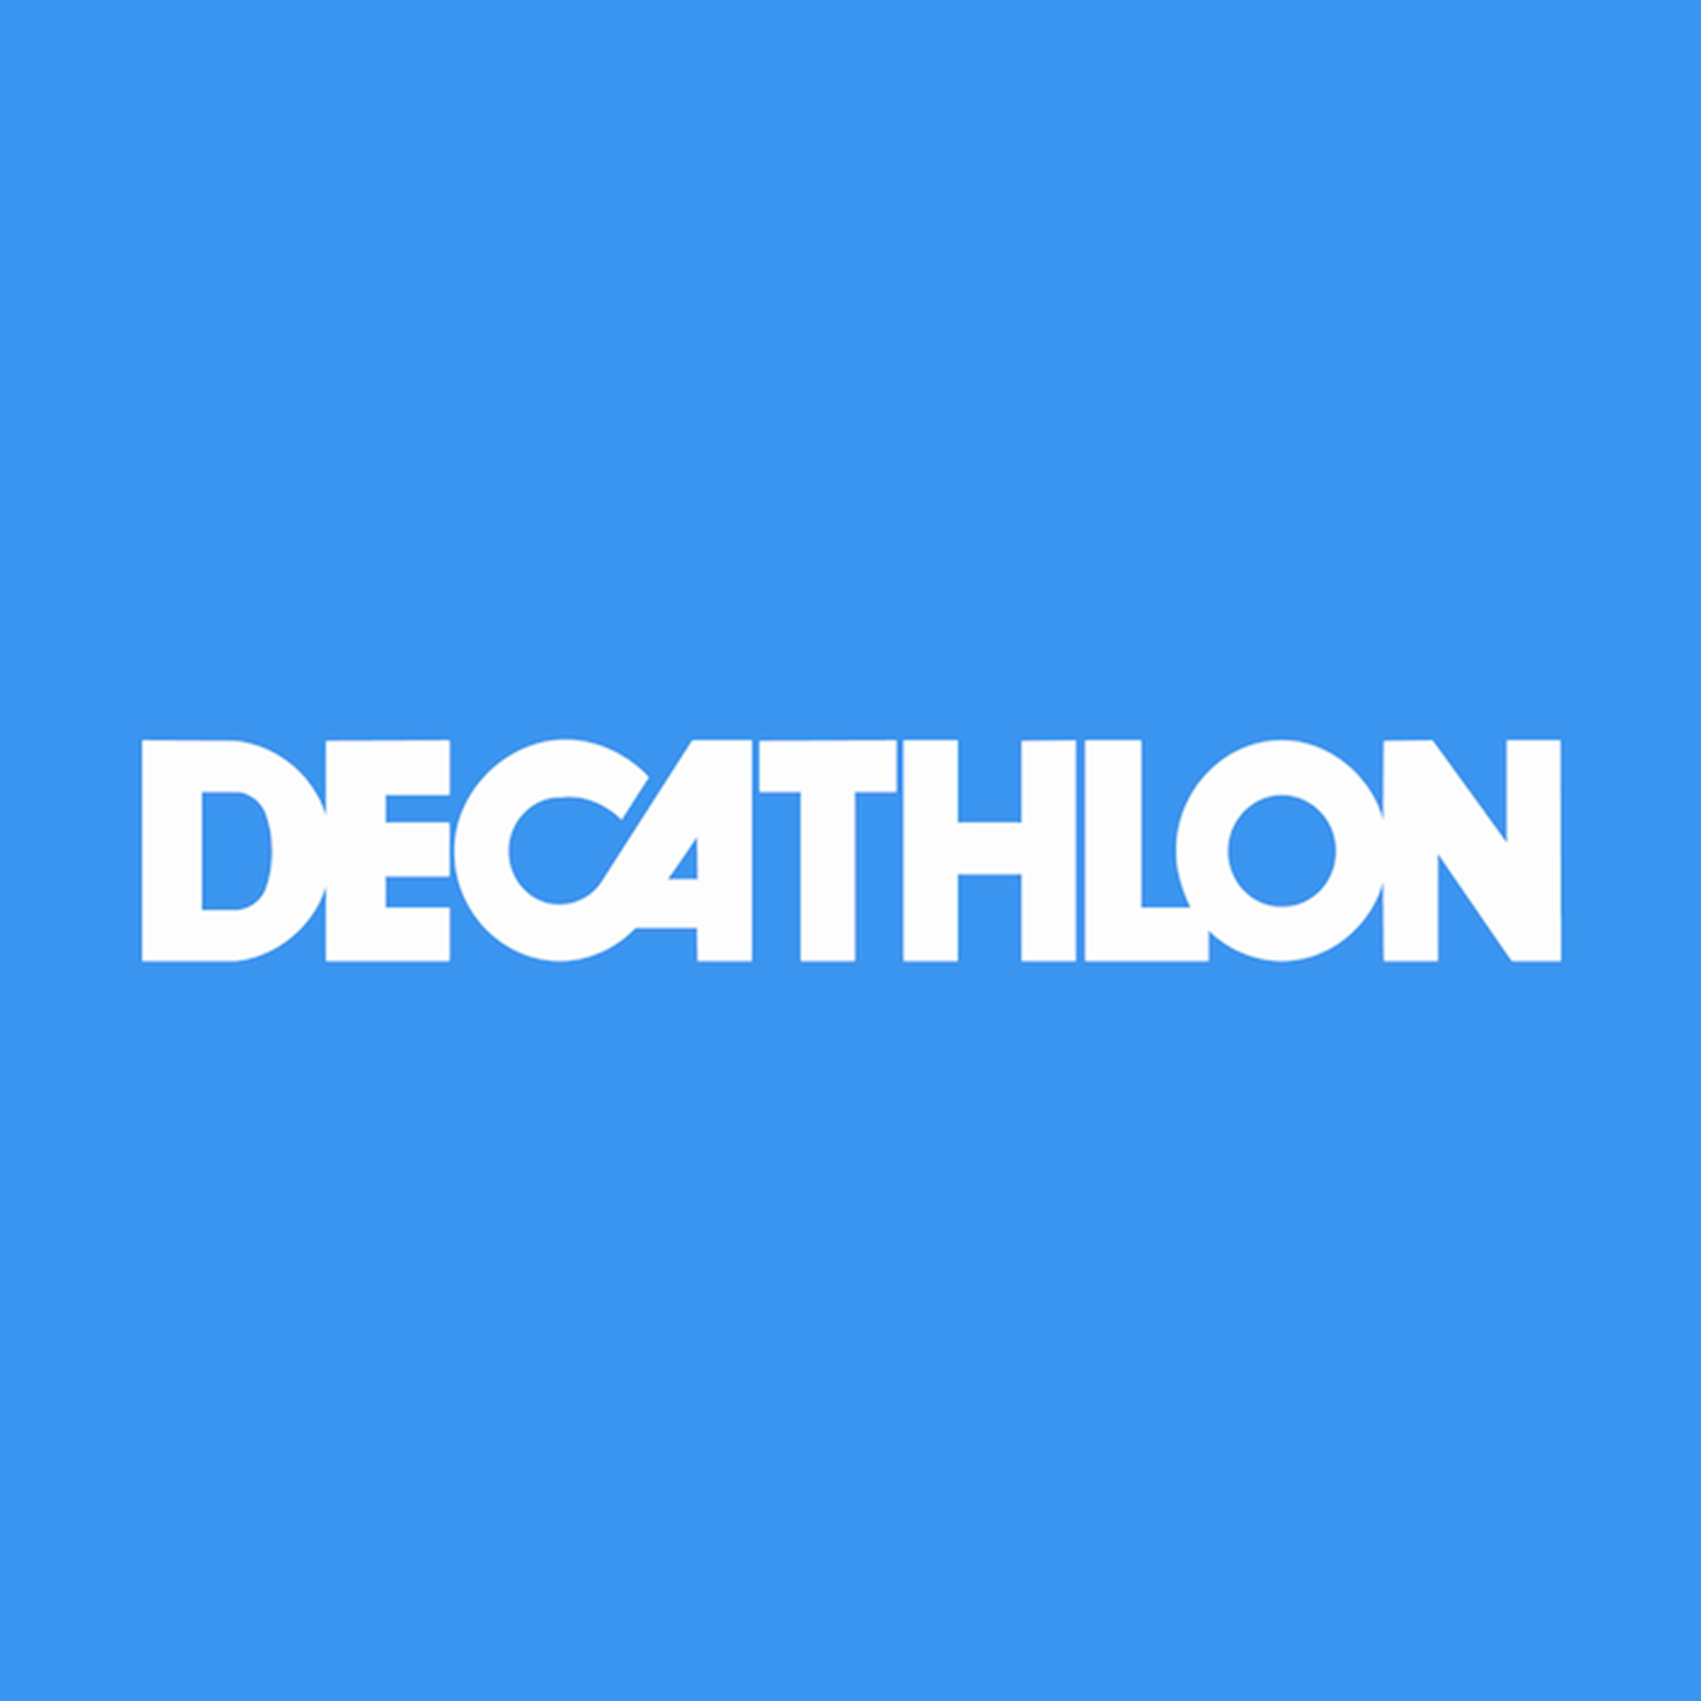 000_decathlon_logo.jpg